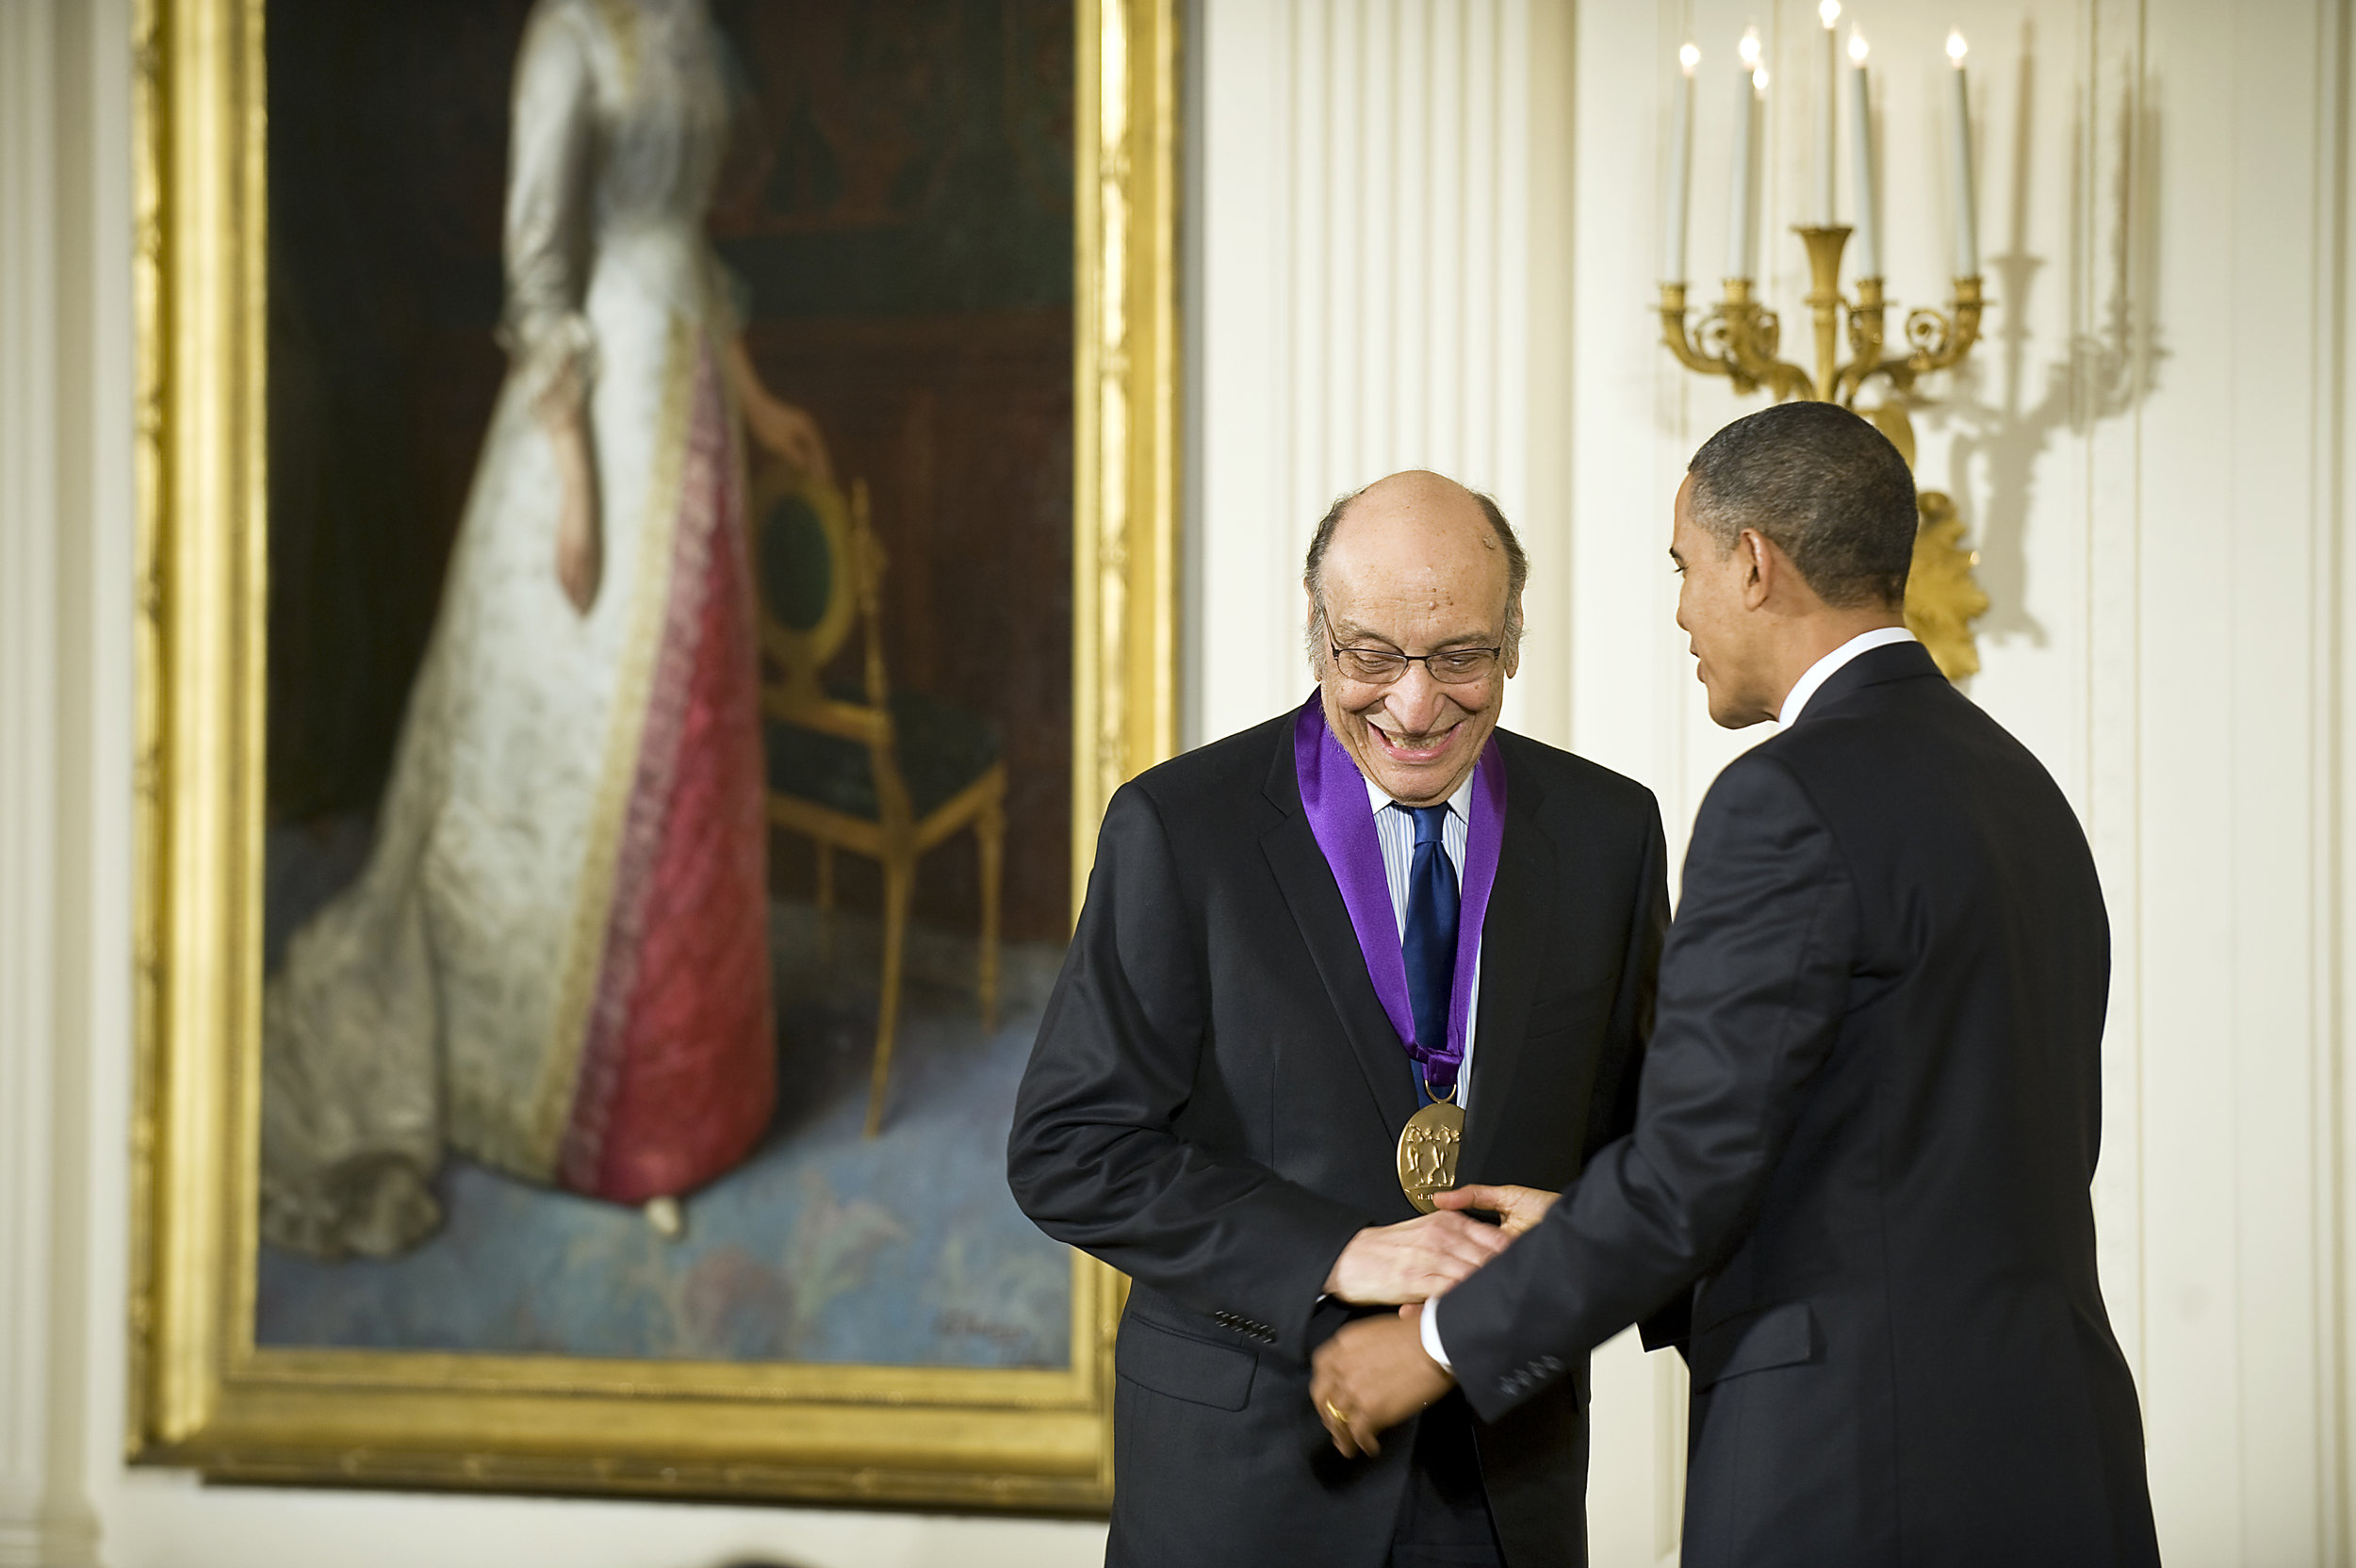 Milton Glaser receiving the National Medal of Arts Award From President Obama